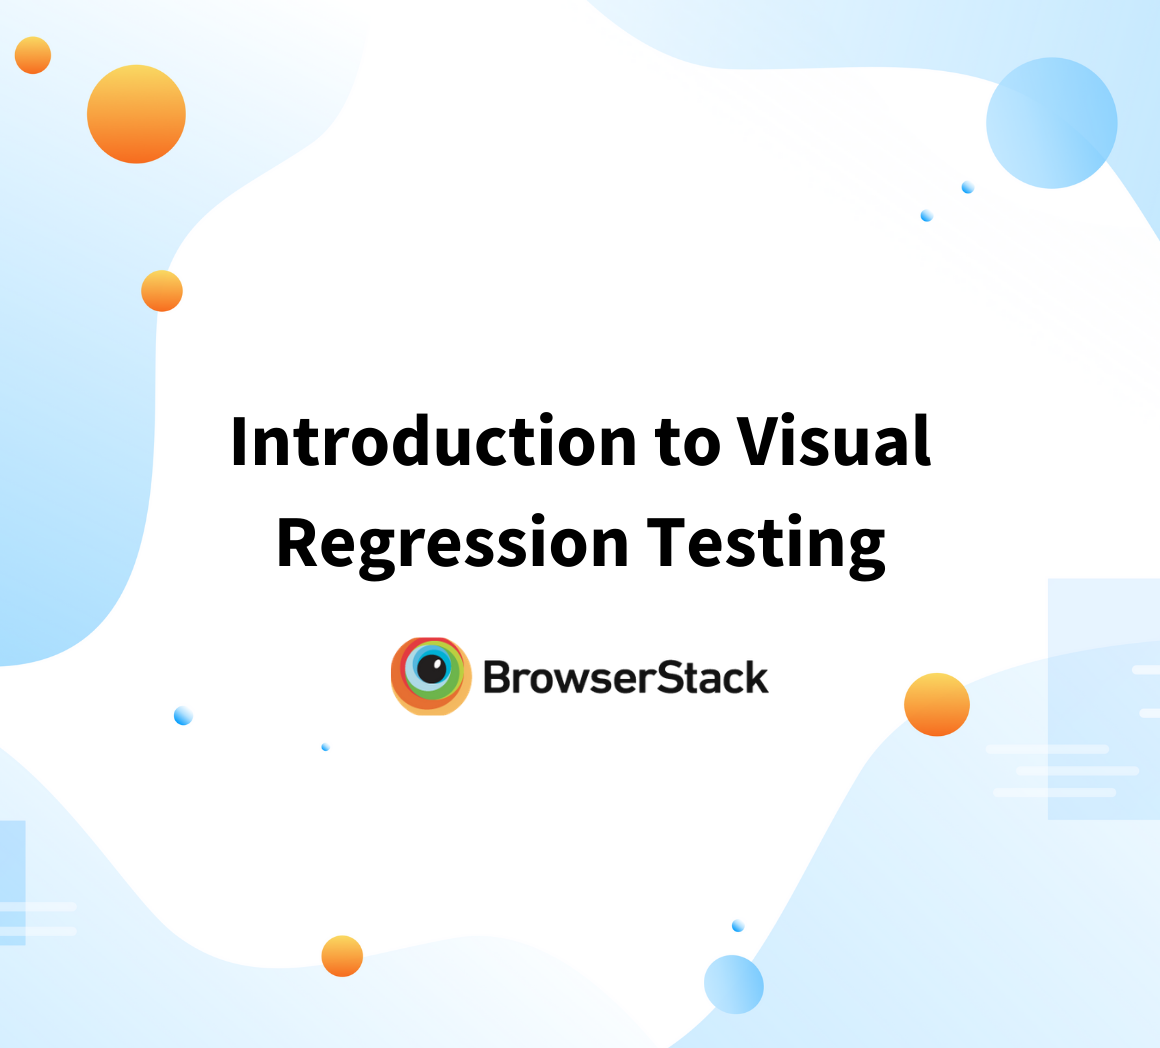 Visual Regression Testing 101